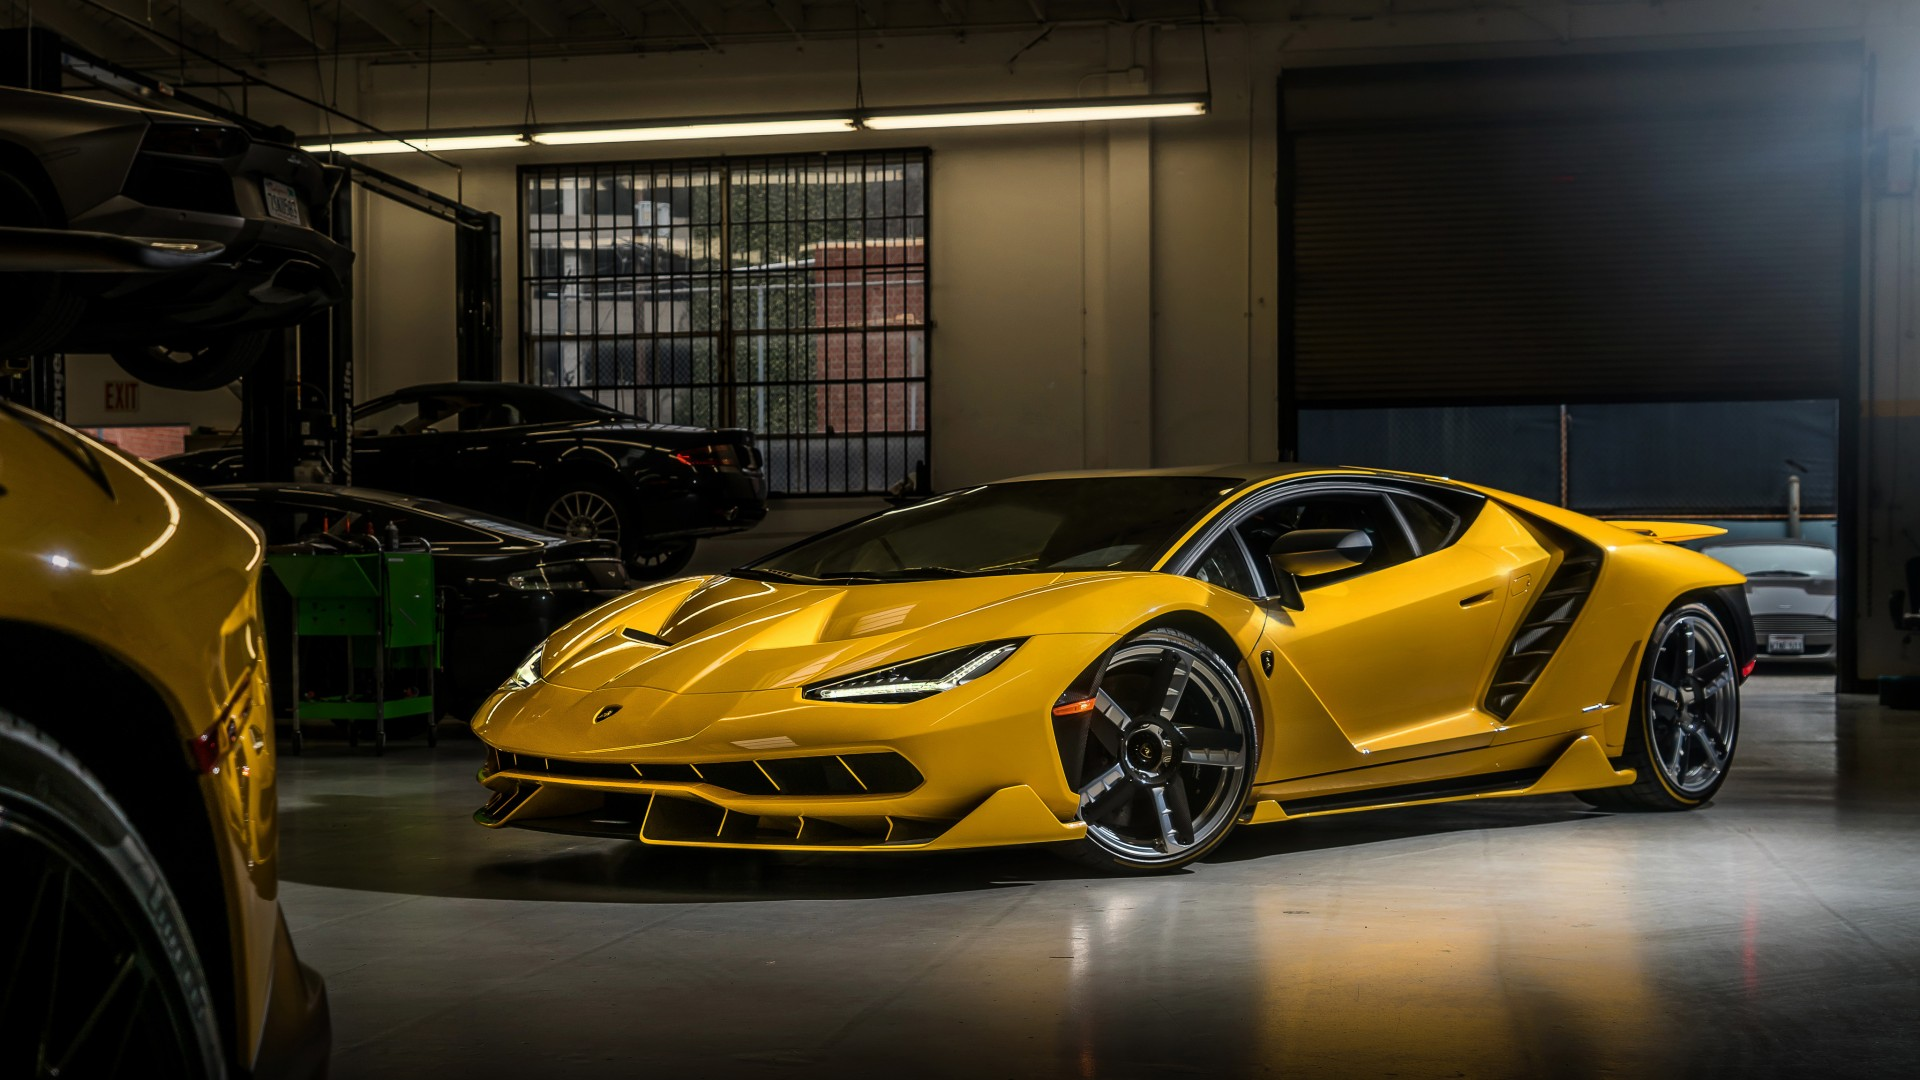 Lamborghini Centenario Coupe 4k Wallpaper Hd Car